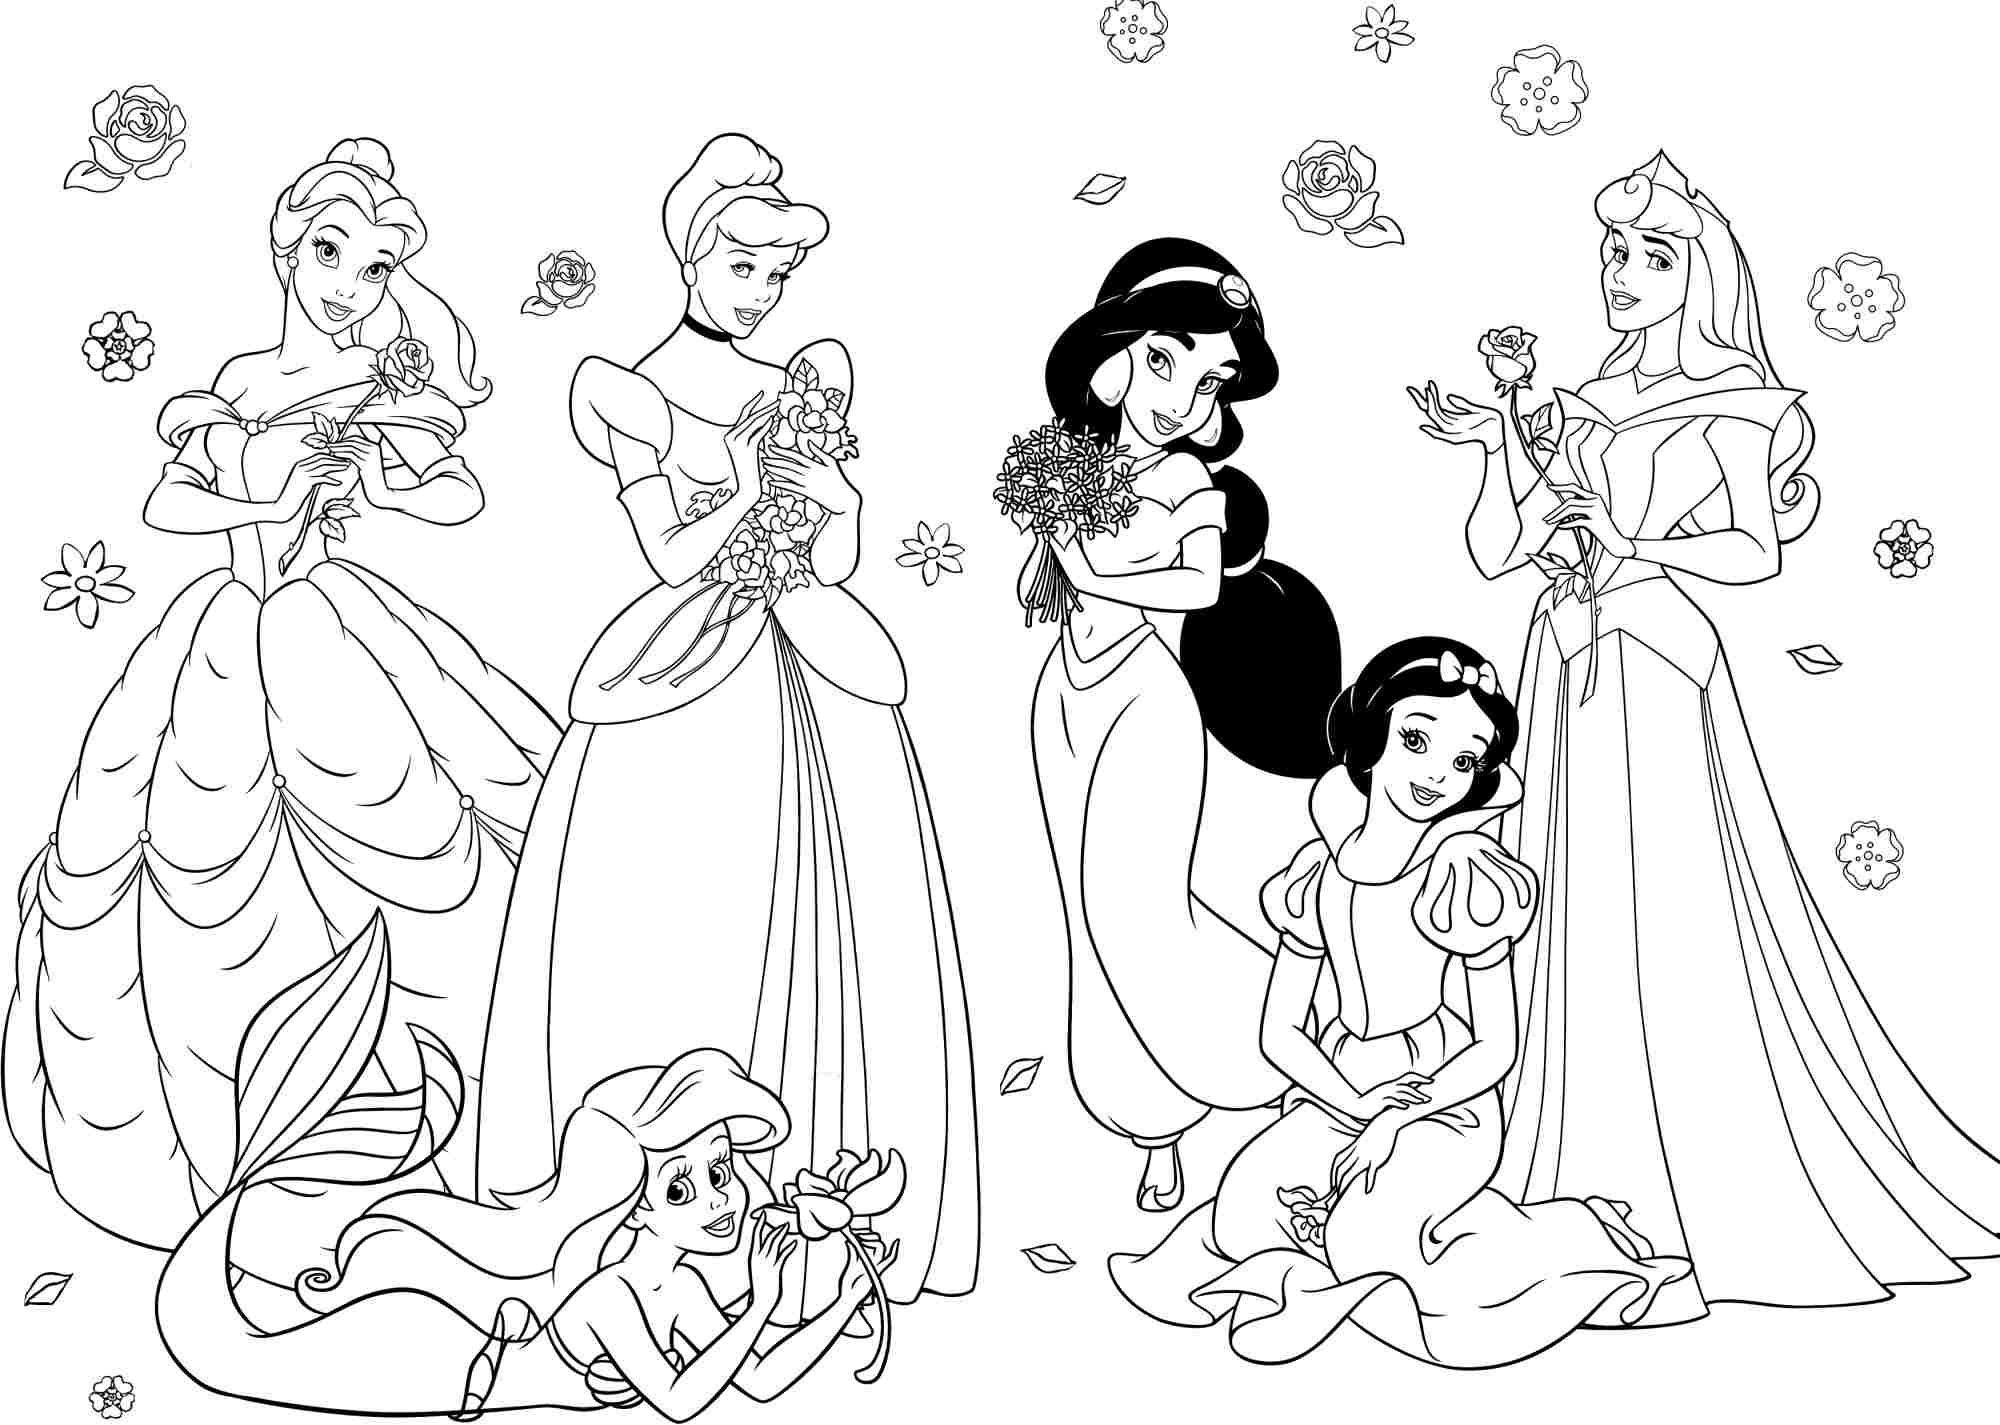 Disney princess birthday coloring pages -  Coloring Pages Kids Coloring Pages Disney Princess Wonderful Kids Color Page Kids Creativities Alicas Drawing The